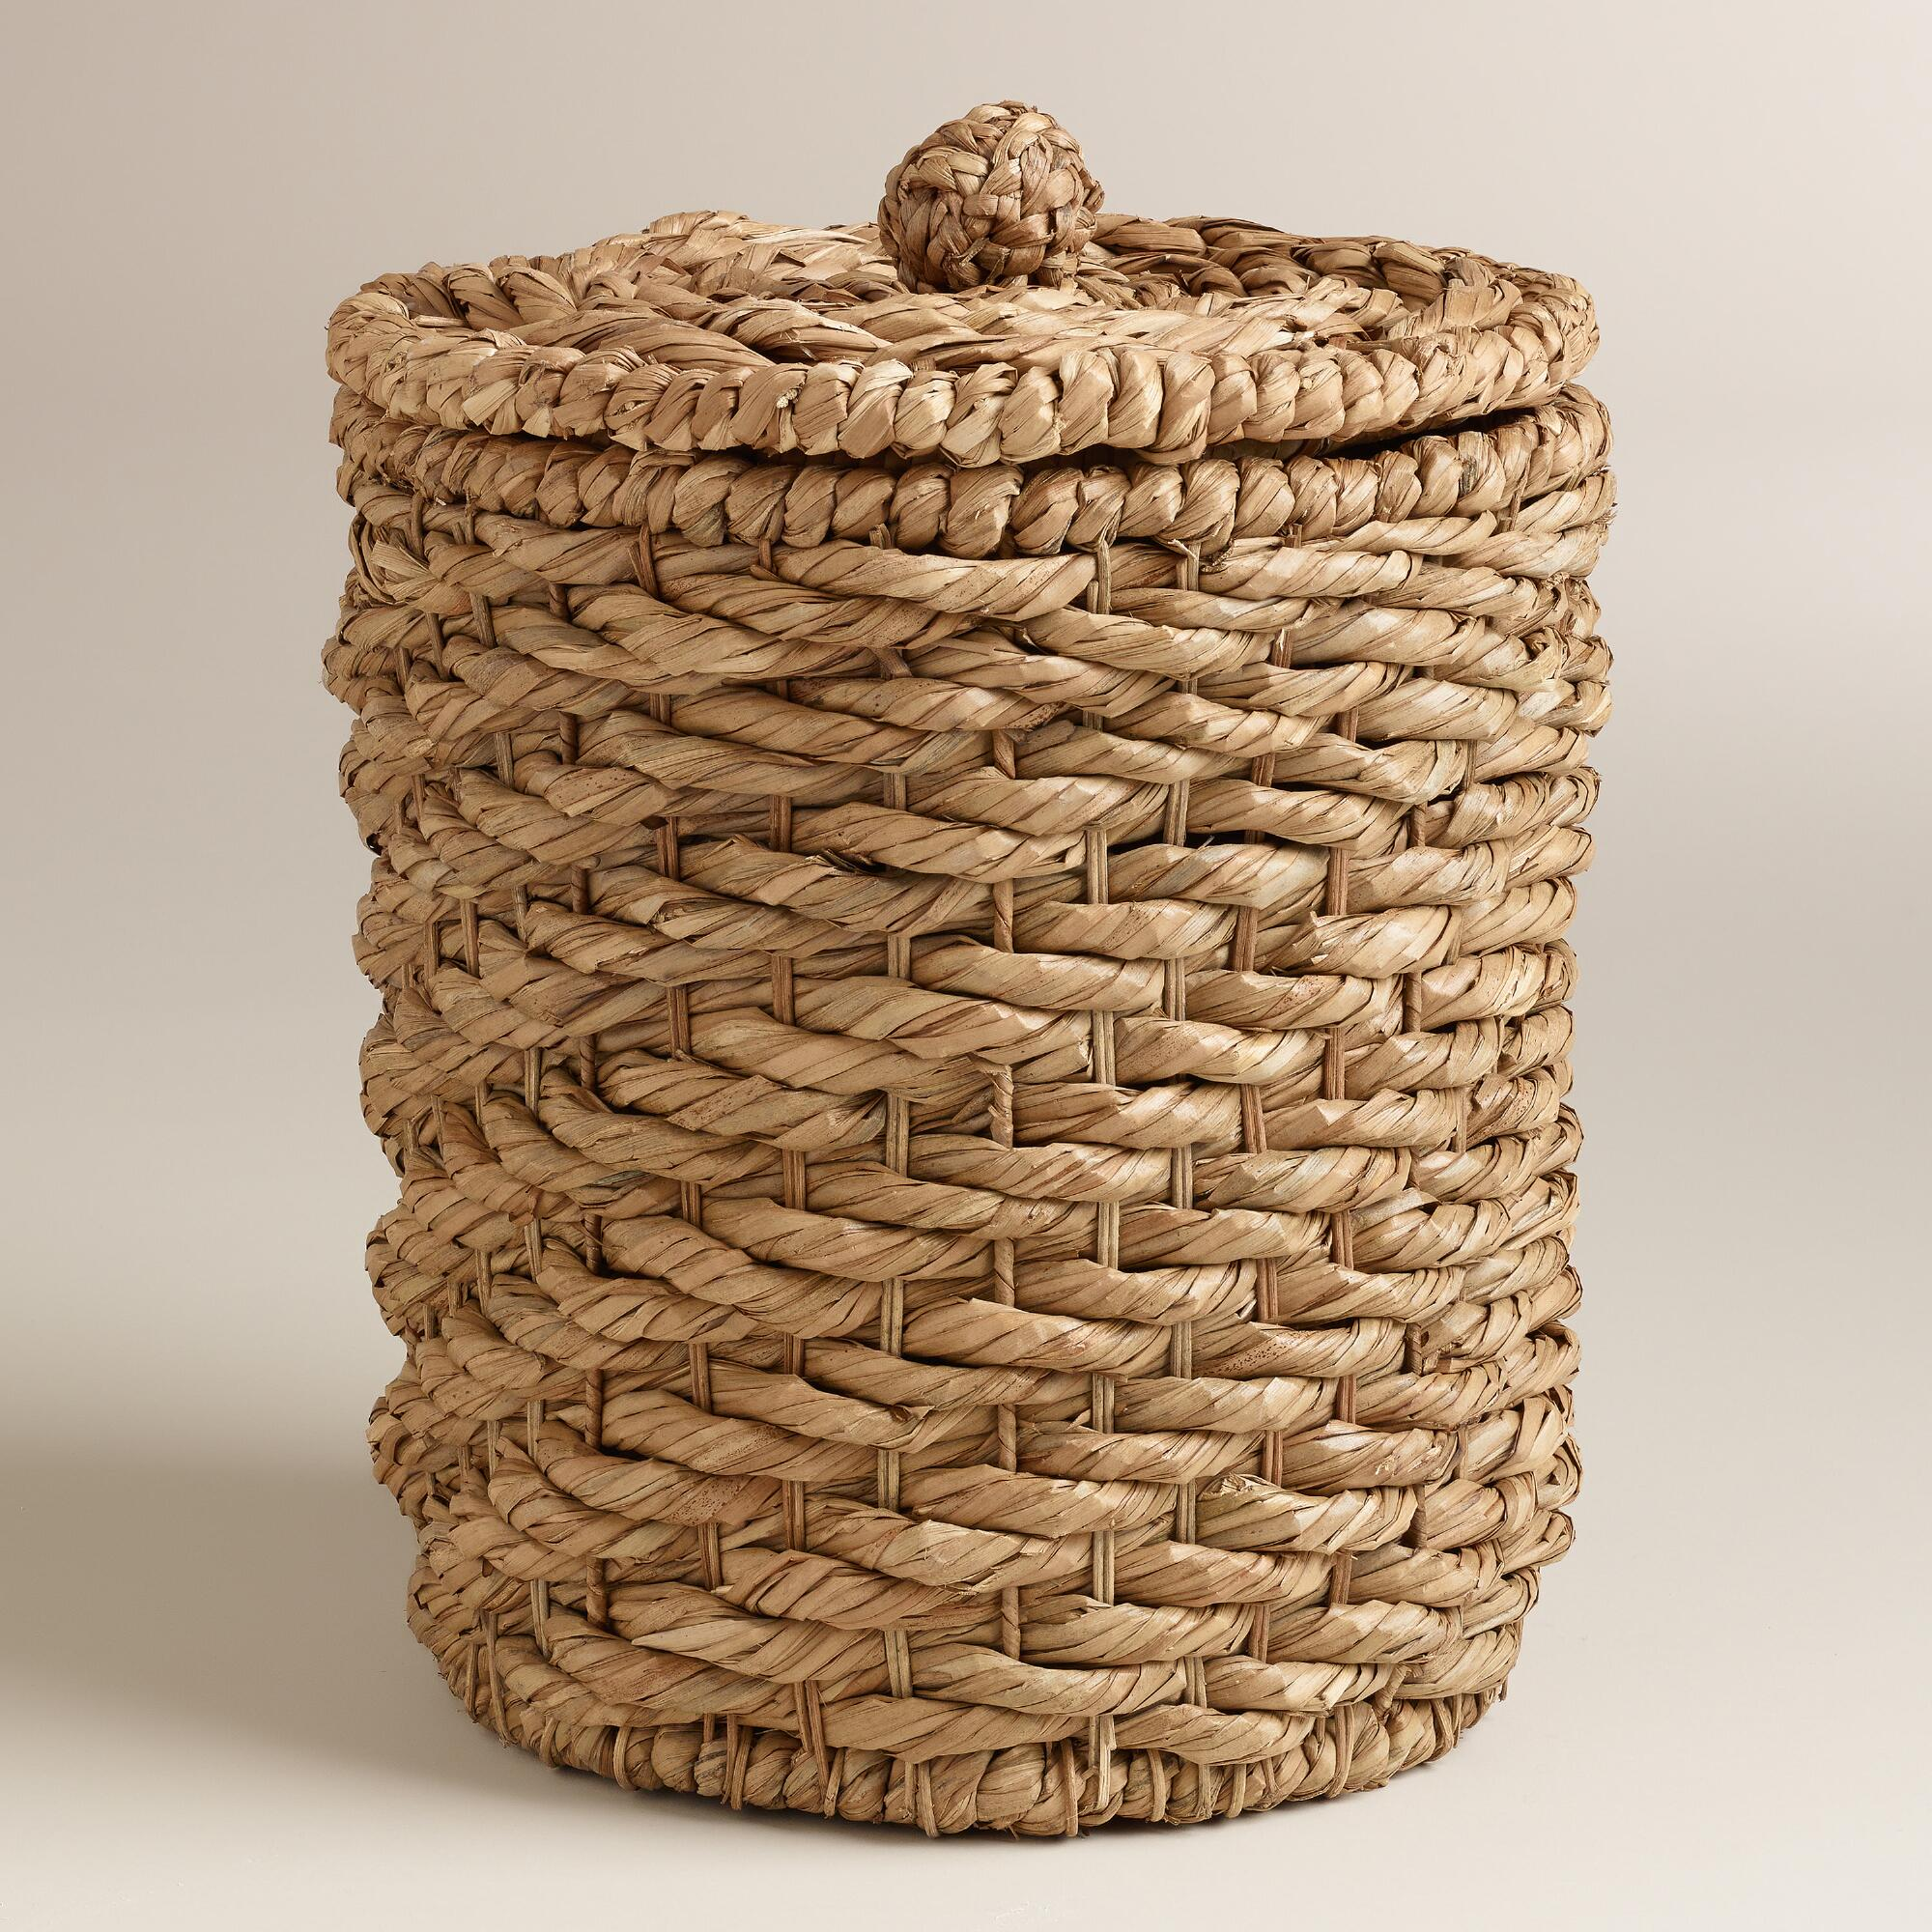 Natural water hyacinth lidded round ava basket further Sapphire Residence besides My Philippine Budget in addition Cape Dutch in addition 55437d9de58ece50290004b4 Vitra Design Museum S Manuel Herz On The Heroic Modern Architecture Of Africa Photo. on 3